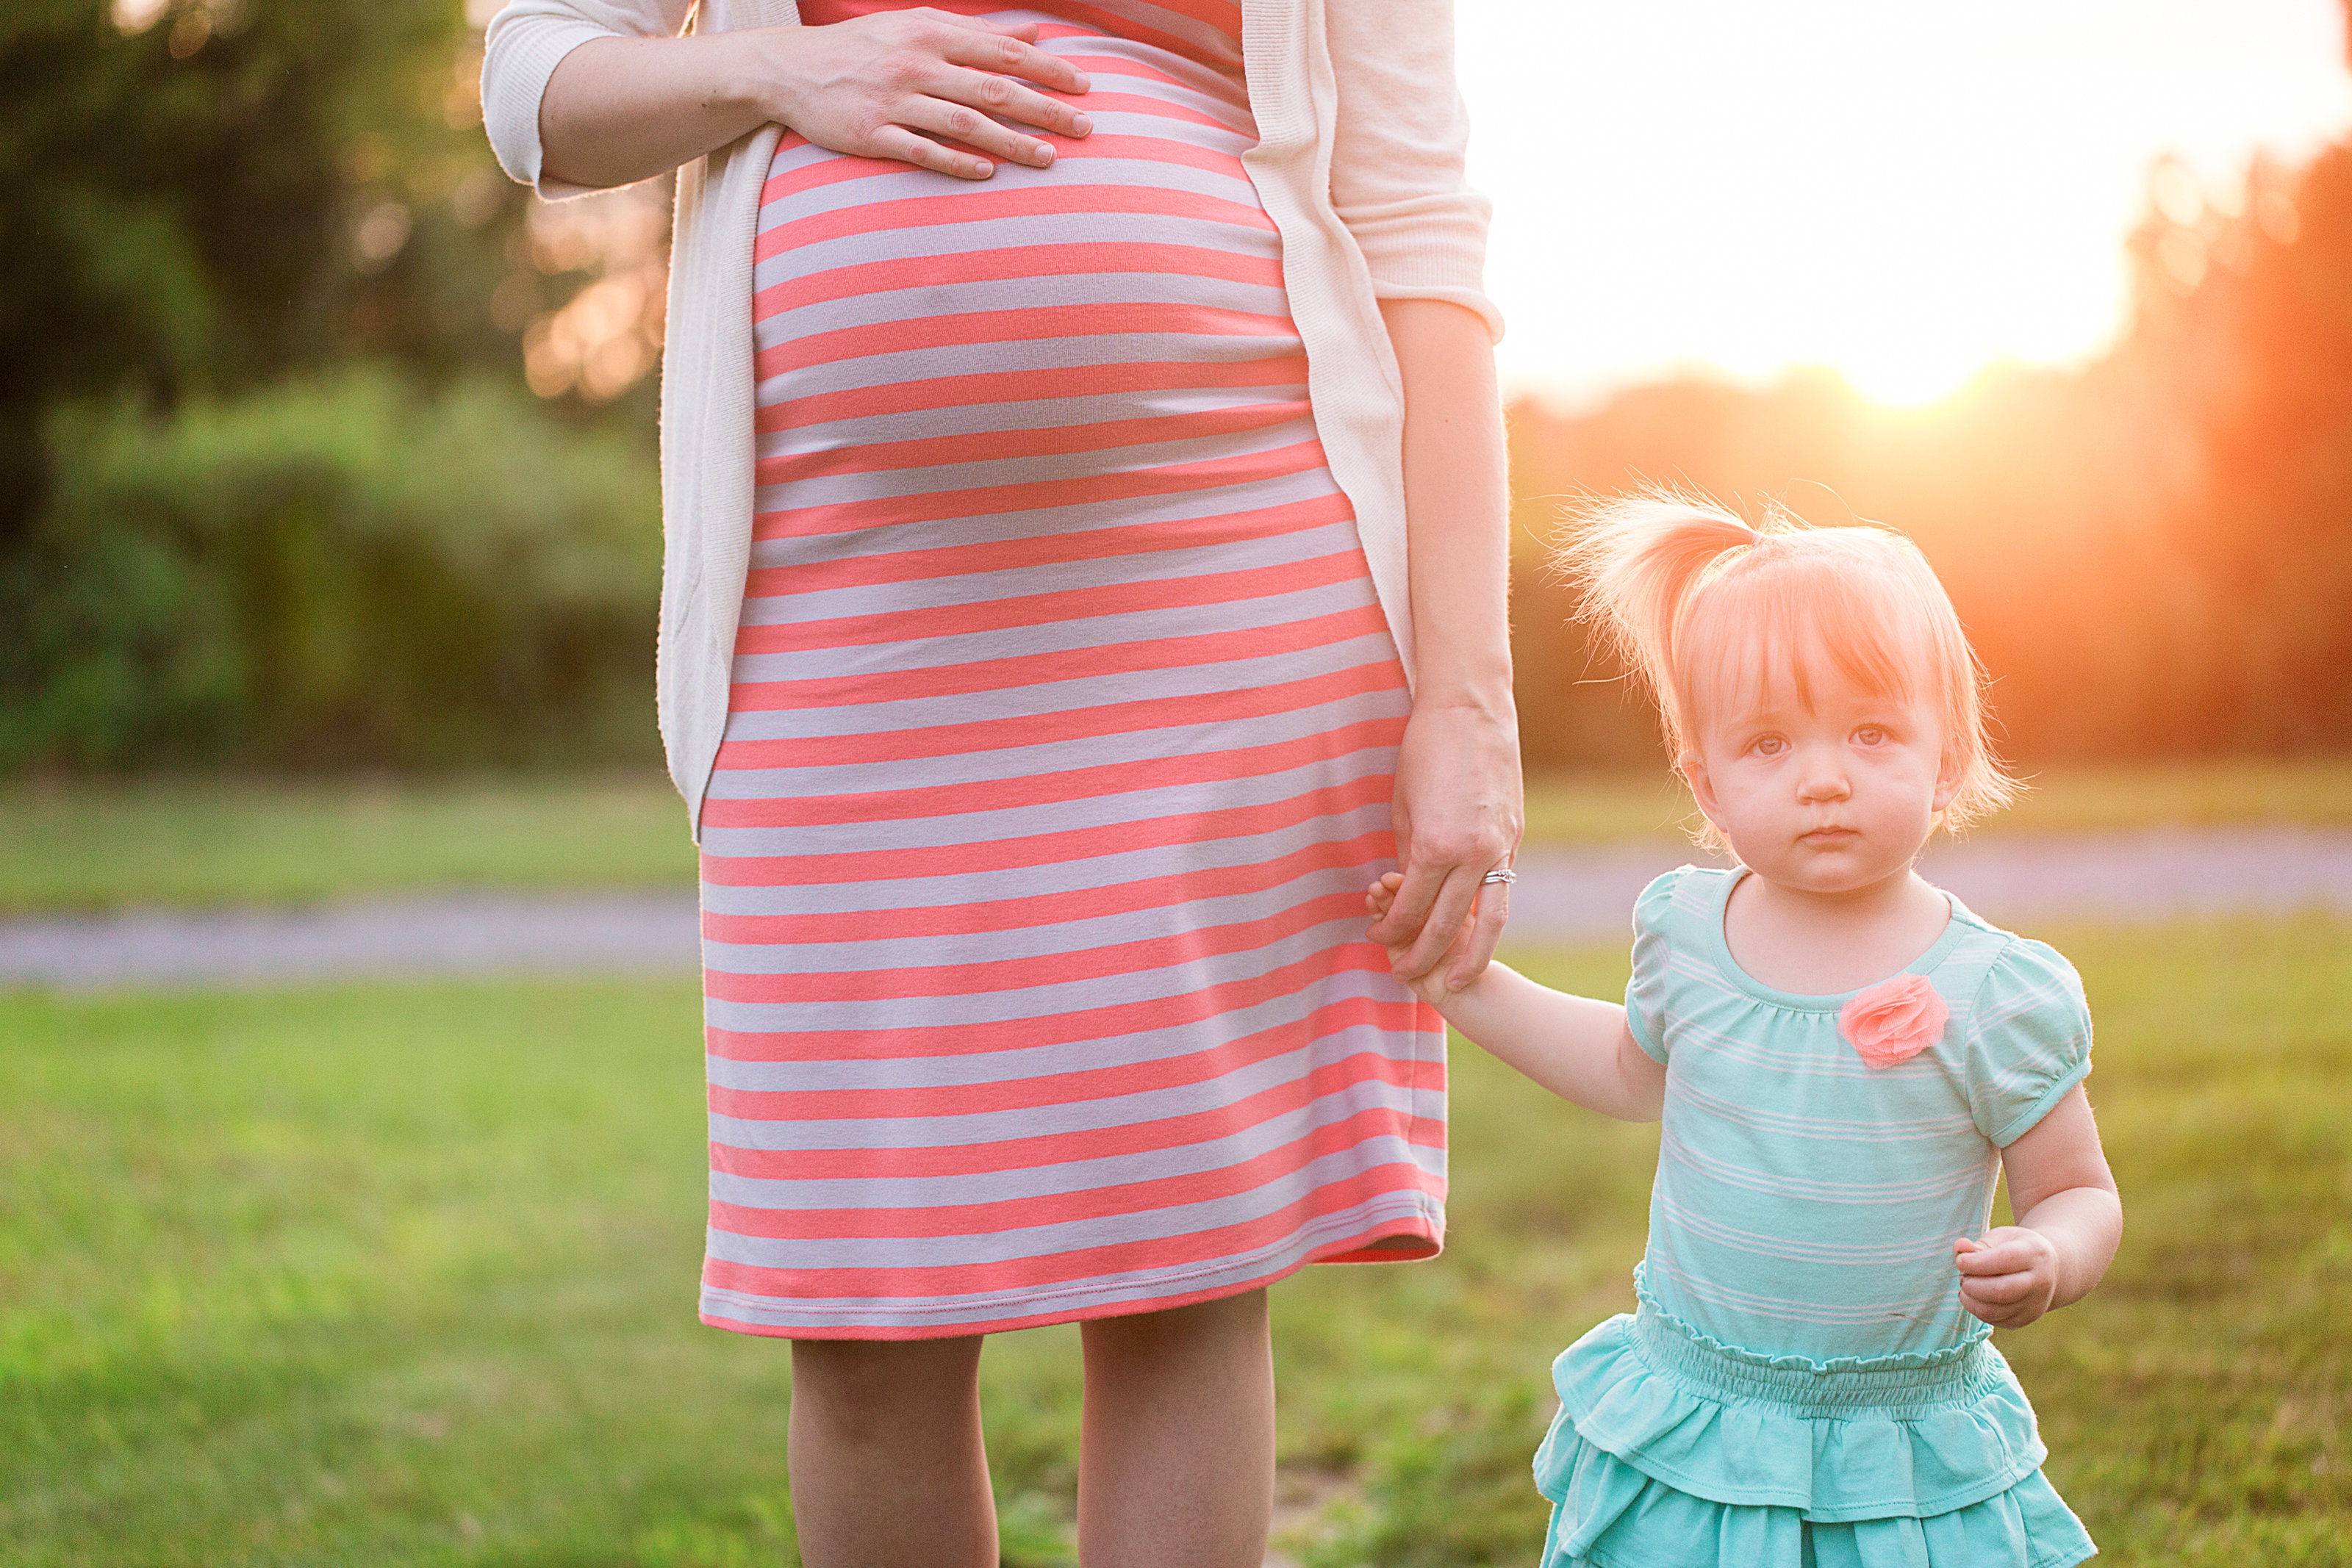 PA mother and daughter maternity photo bright colors